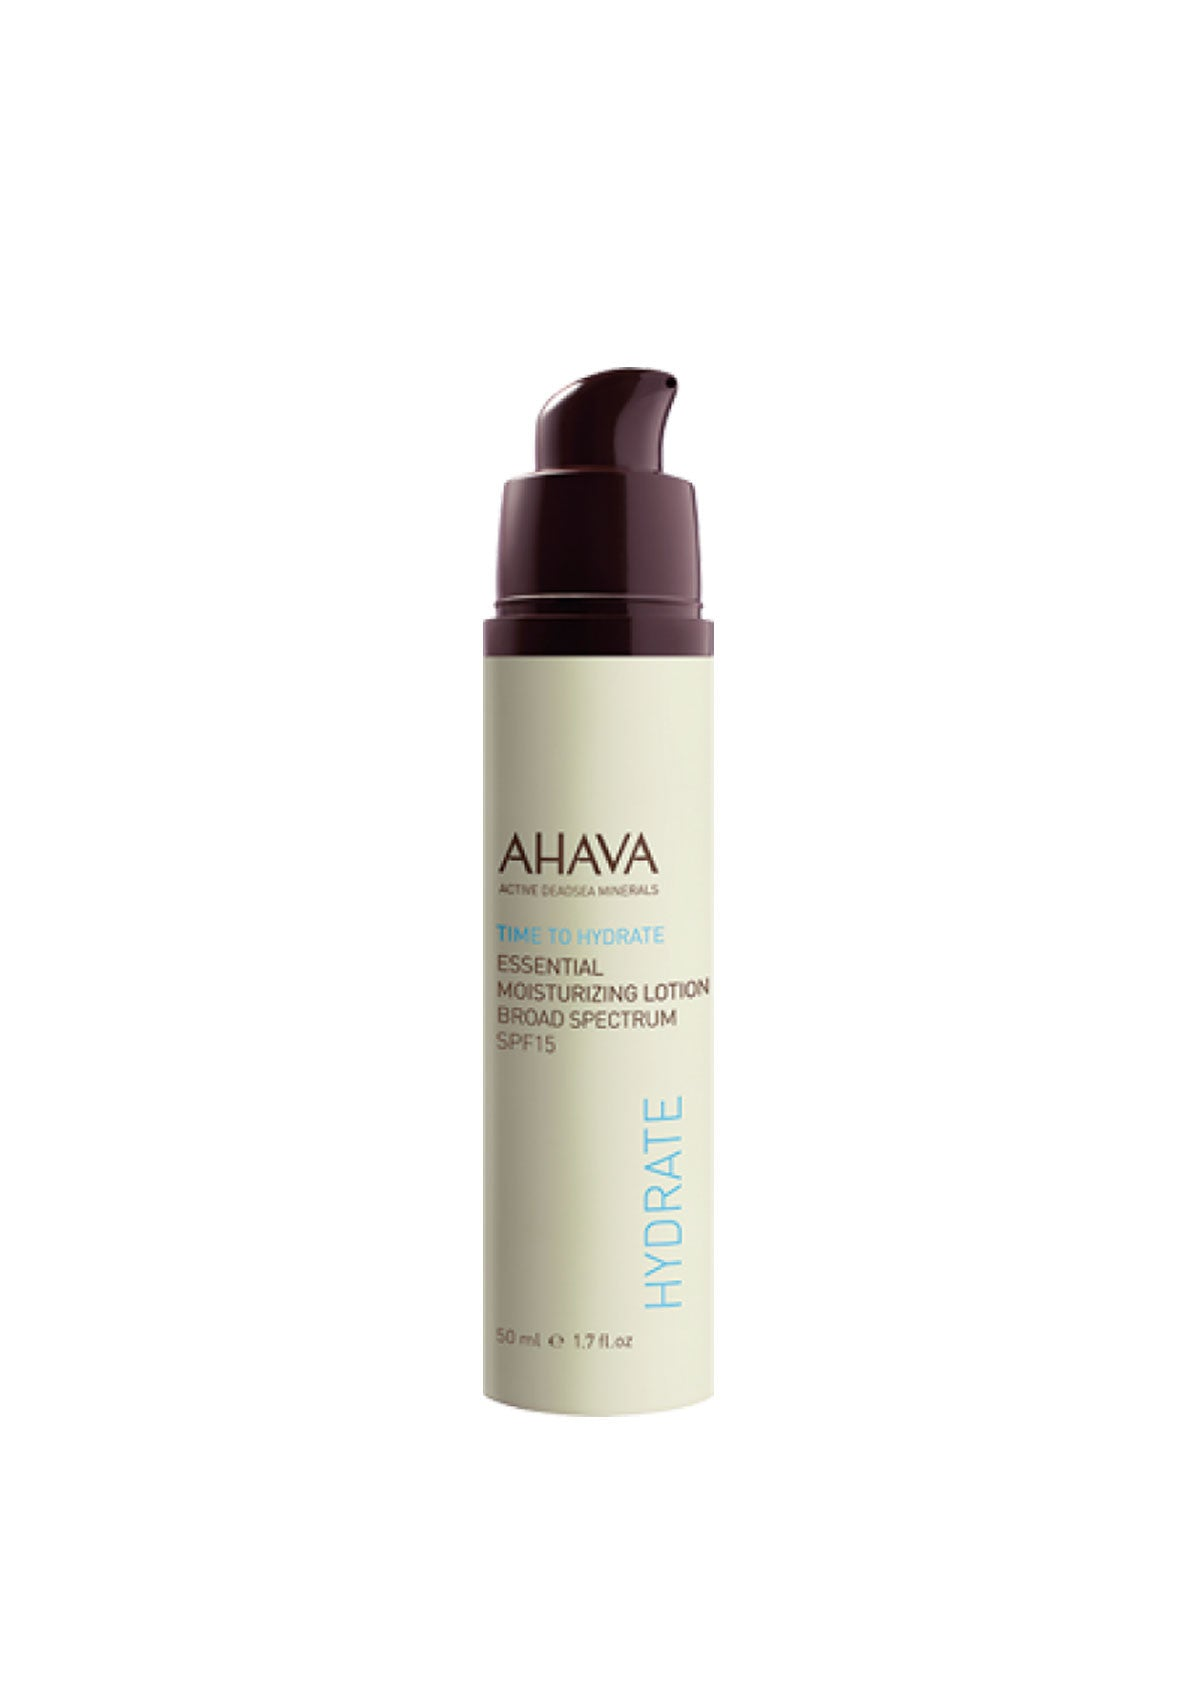 AHAVA - Essential Moisturizing Lotion Broad Spectrum SPF 15 - DeadSeaShop.co.uk